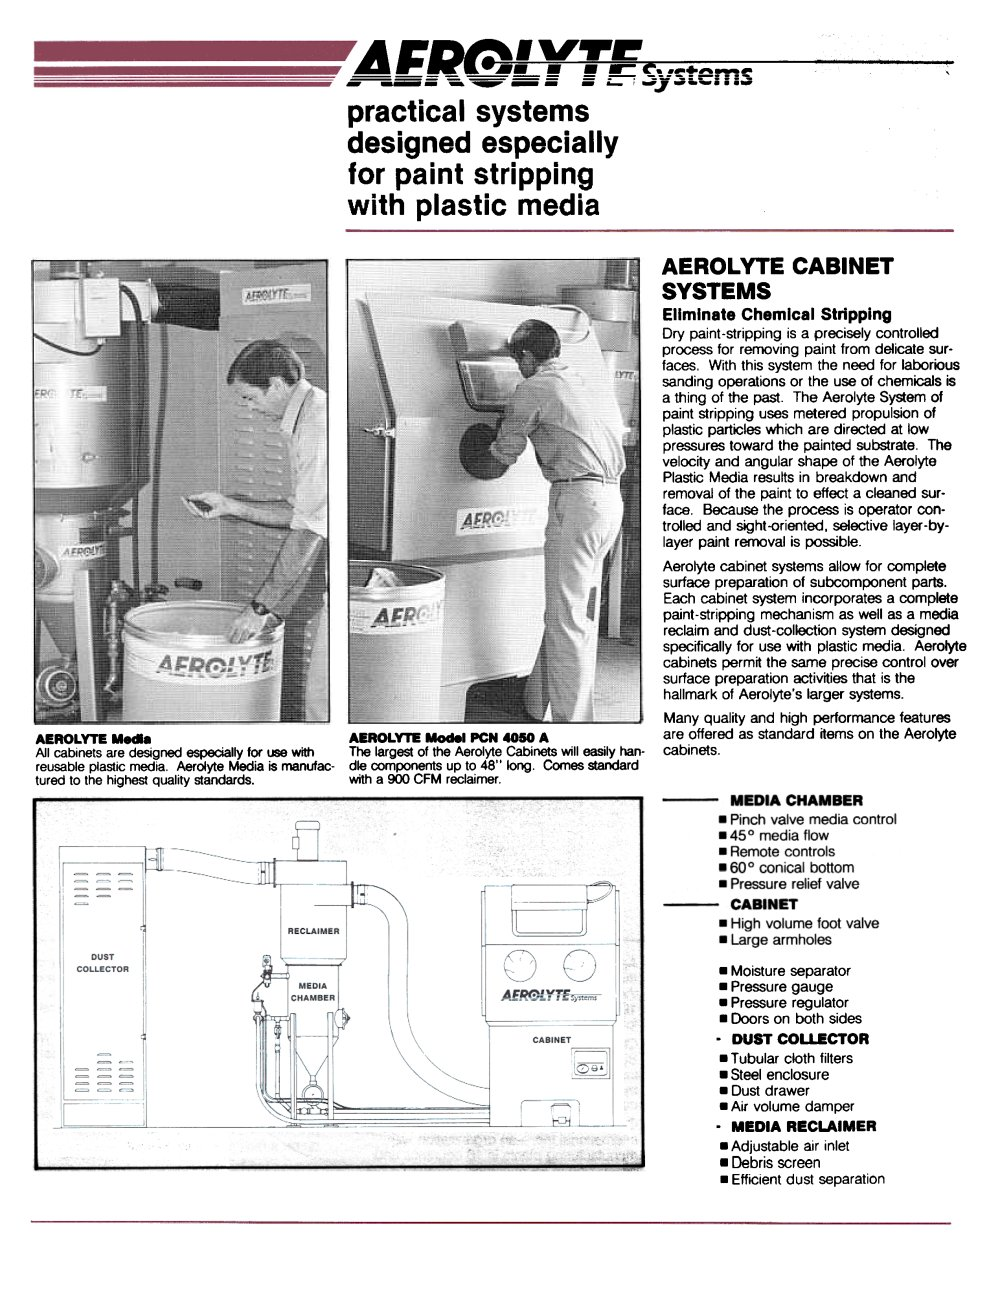 Clemco Industries Blast Cabinets Aerolyte Pressure Cabinets Rev A Clemco Industries Pdf